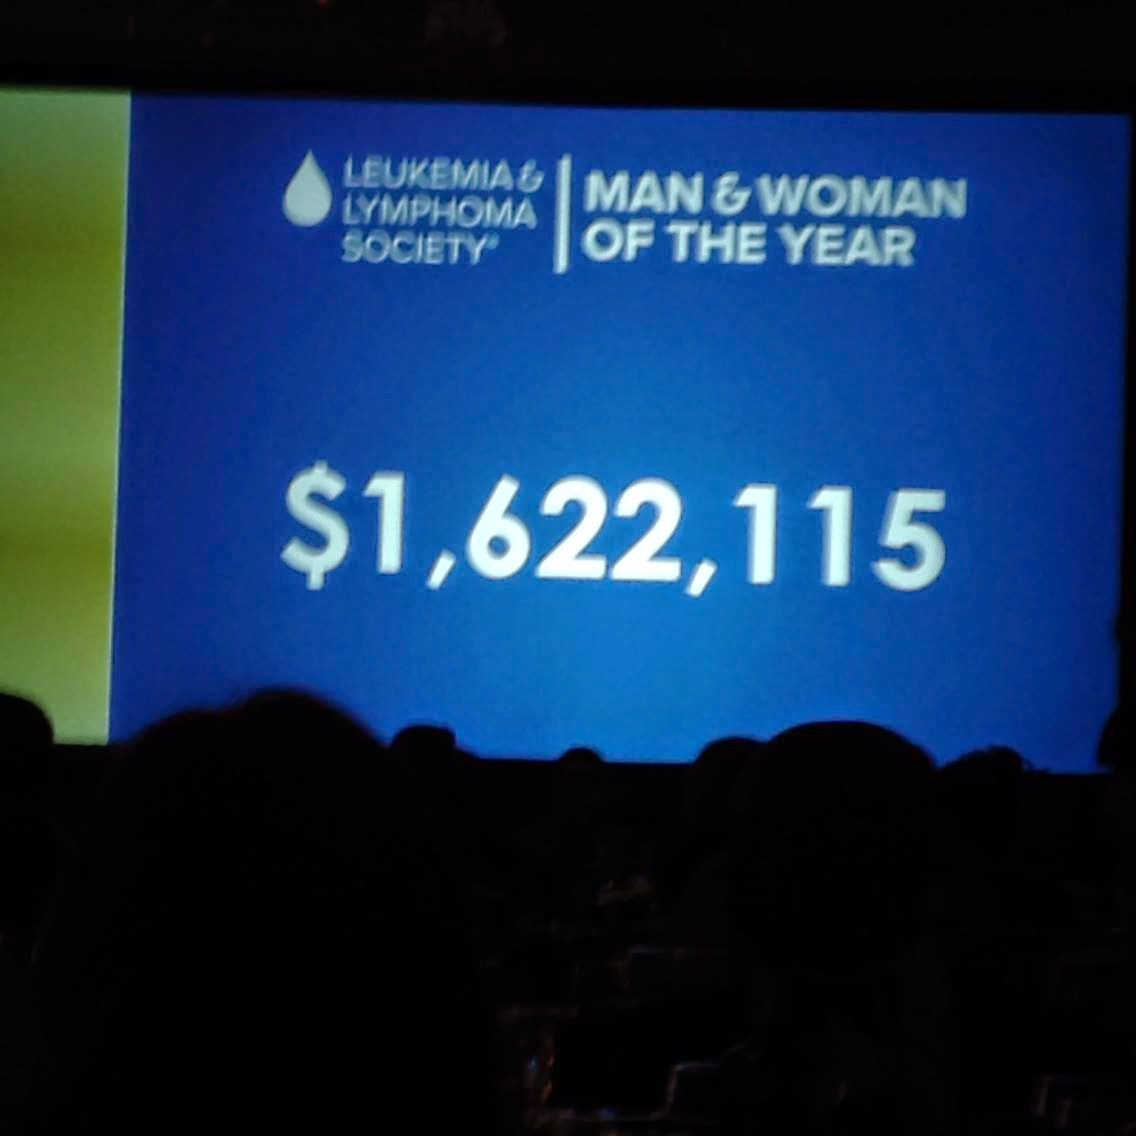 total money raised at 2014 Leukemia & Lymphoma Society Man & Woman of the Year campaign for the National Capital Area